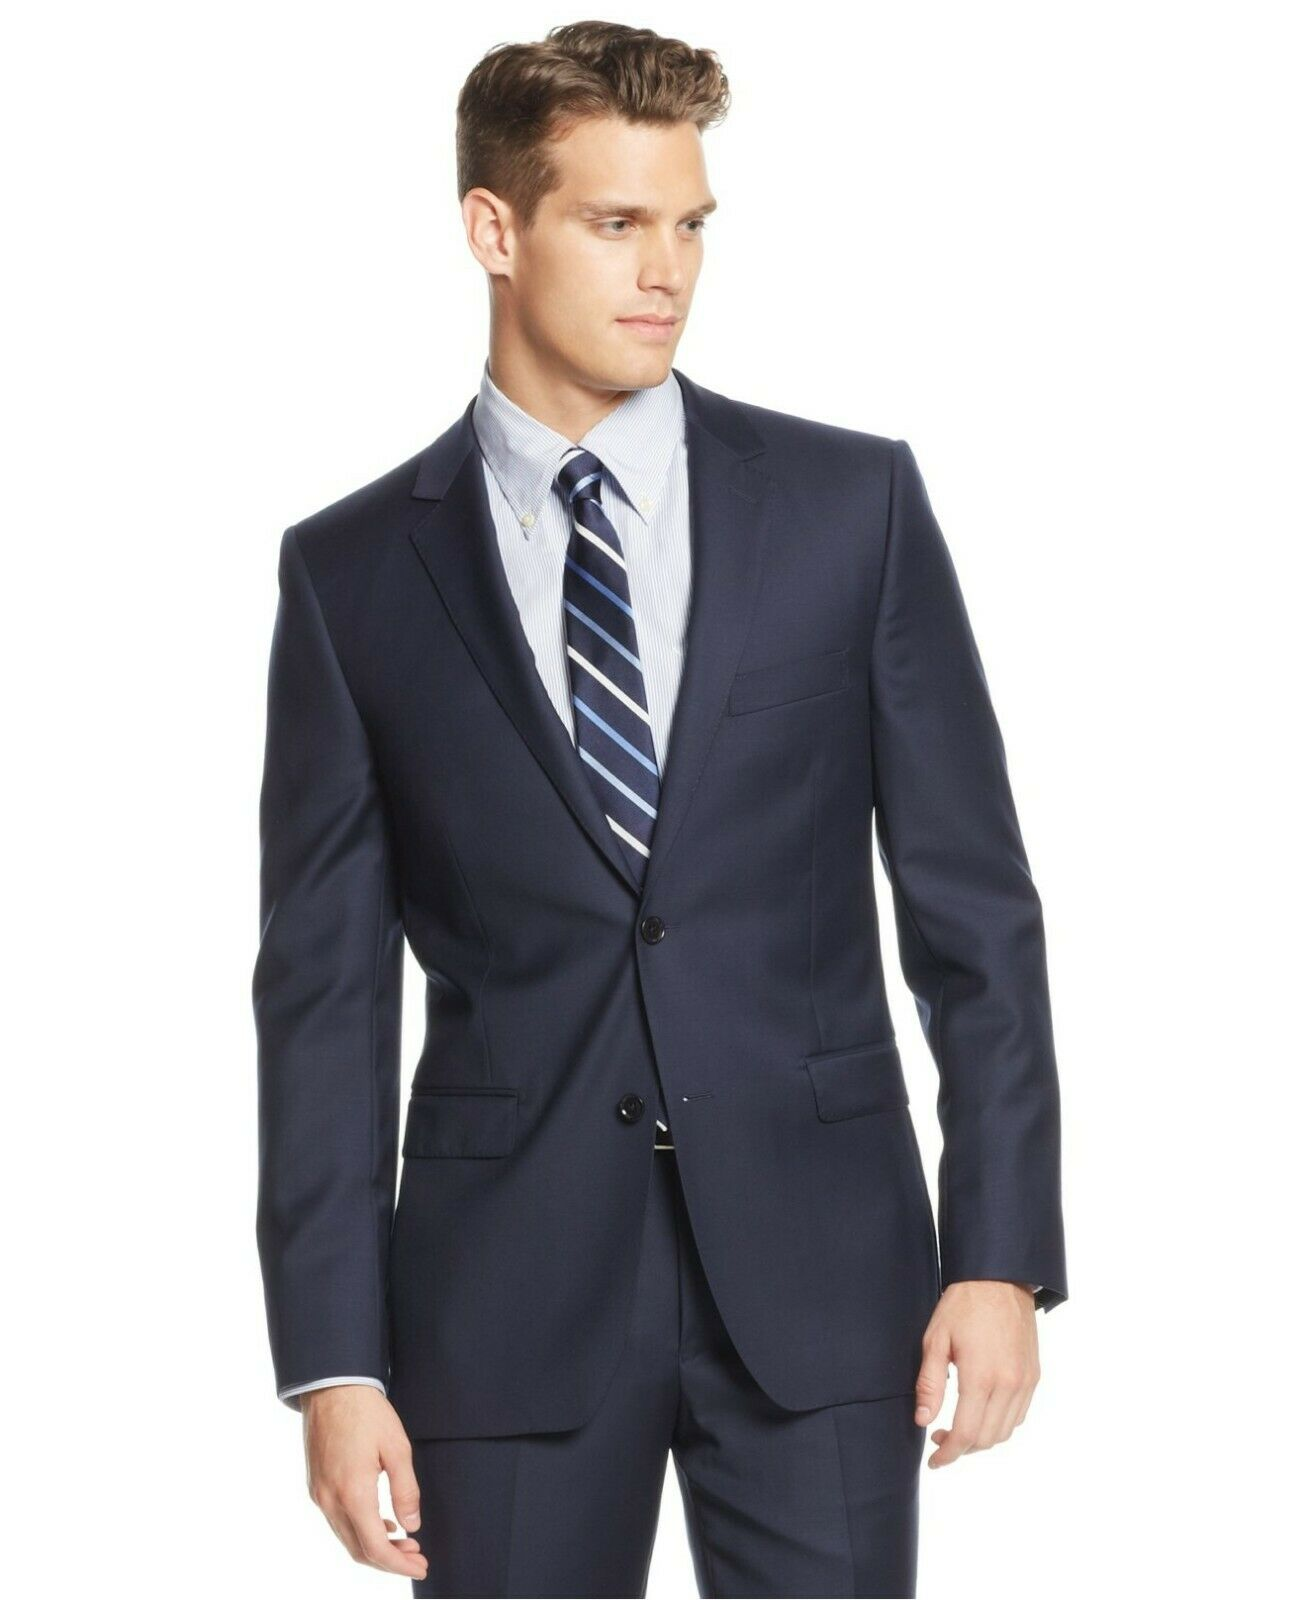 DKNY Slim Fit 42L Navy Solid Two Button 100% Wool NWT Men's Sport Coat GS750